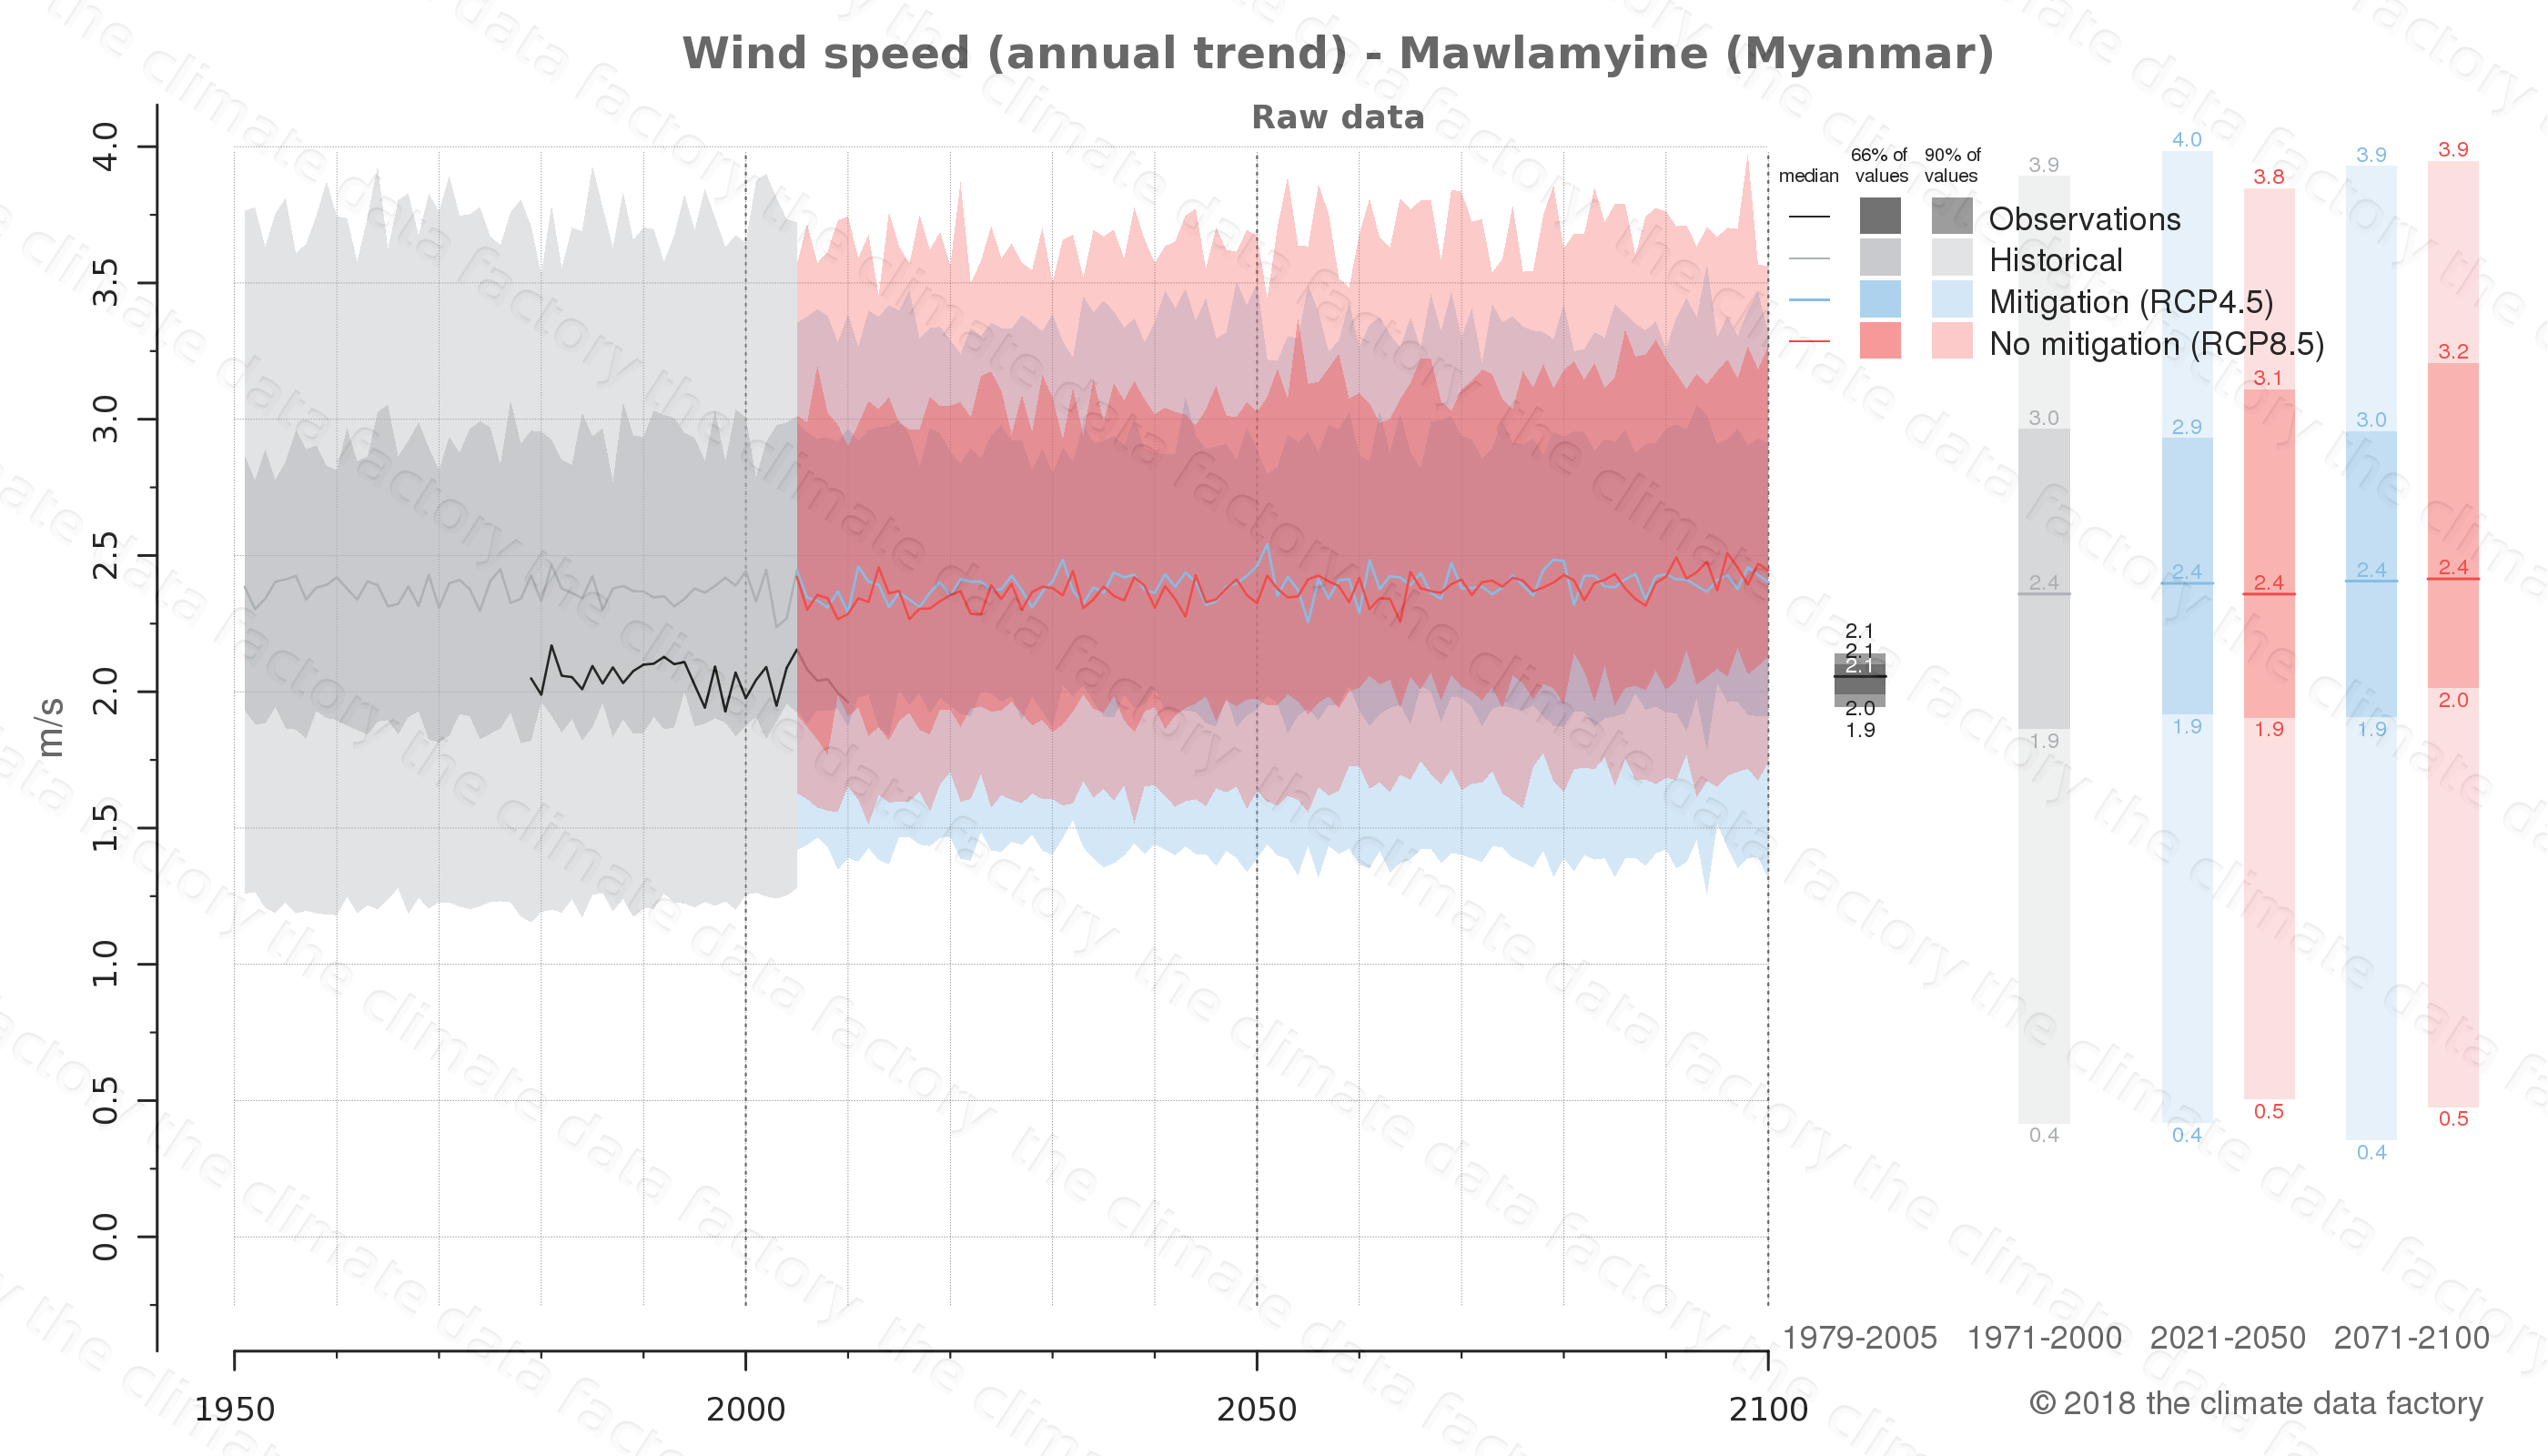 climate change data policy adaptation climate graph city data wind-speed mawlamyine myanmar